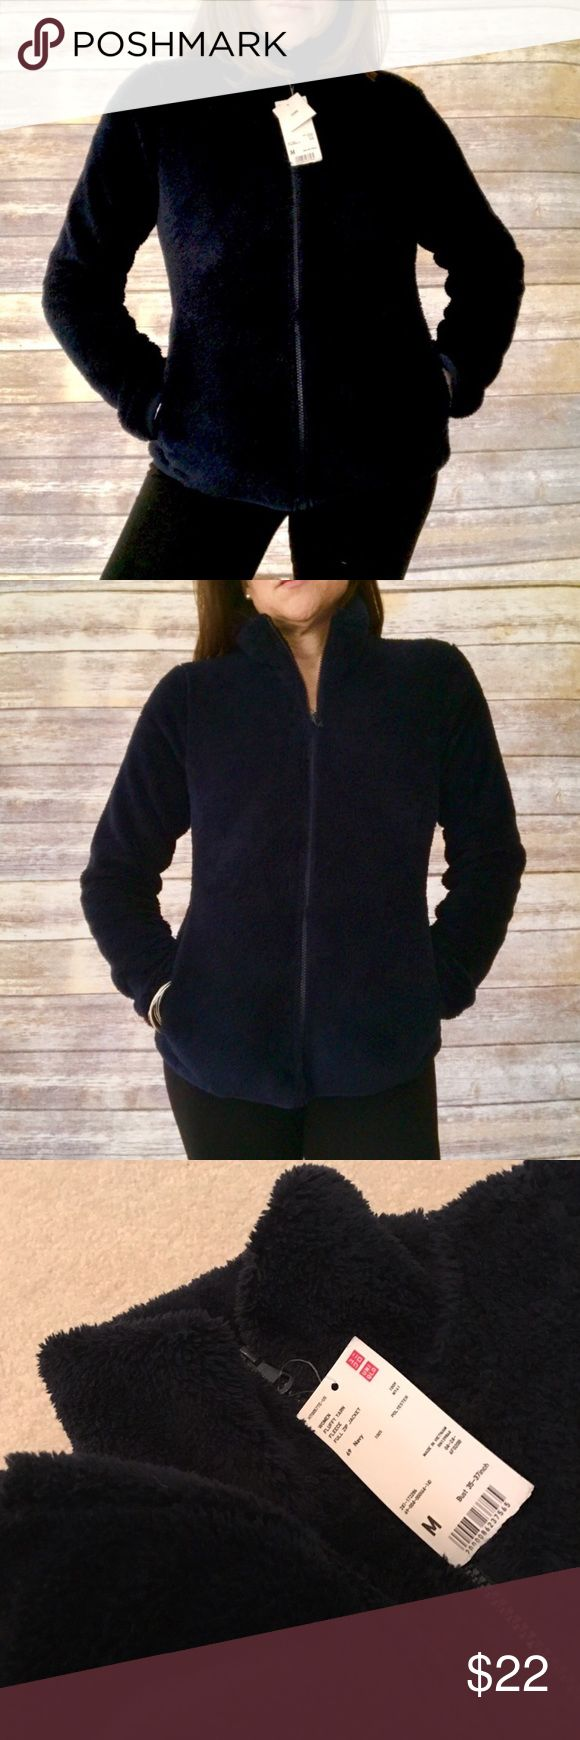 Super Soft Fleece Jacket - Navy, New, Med Soft, beautiful rich navy. Inner and outer pockets. Double Xmas gift. Never worn and Uniqlo won't take returns without receipts. Great spring / summer campfire jacket! Uniqlo Jackets & Coats